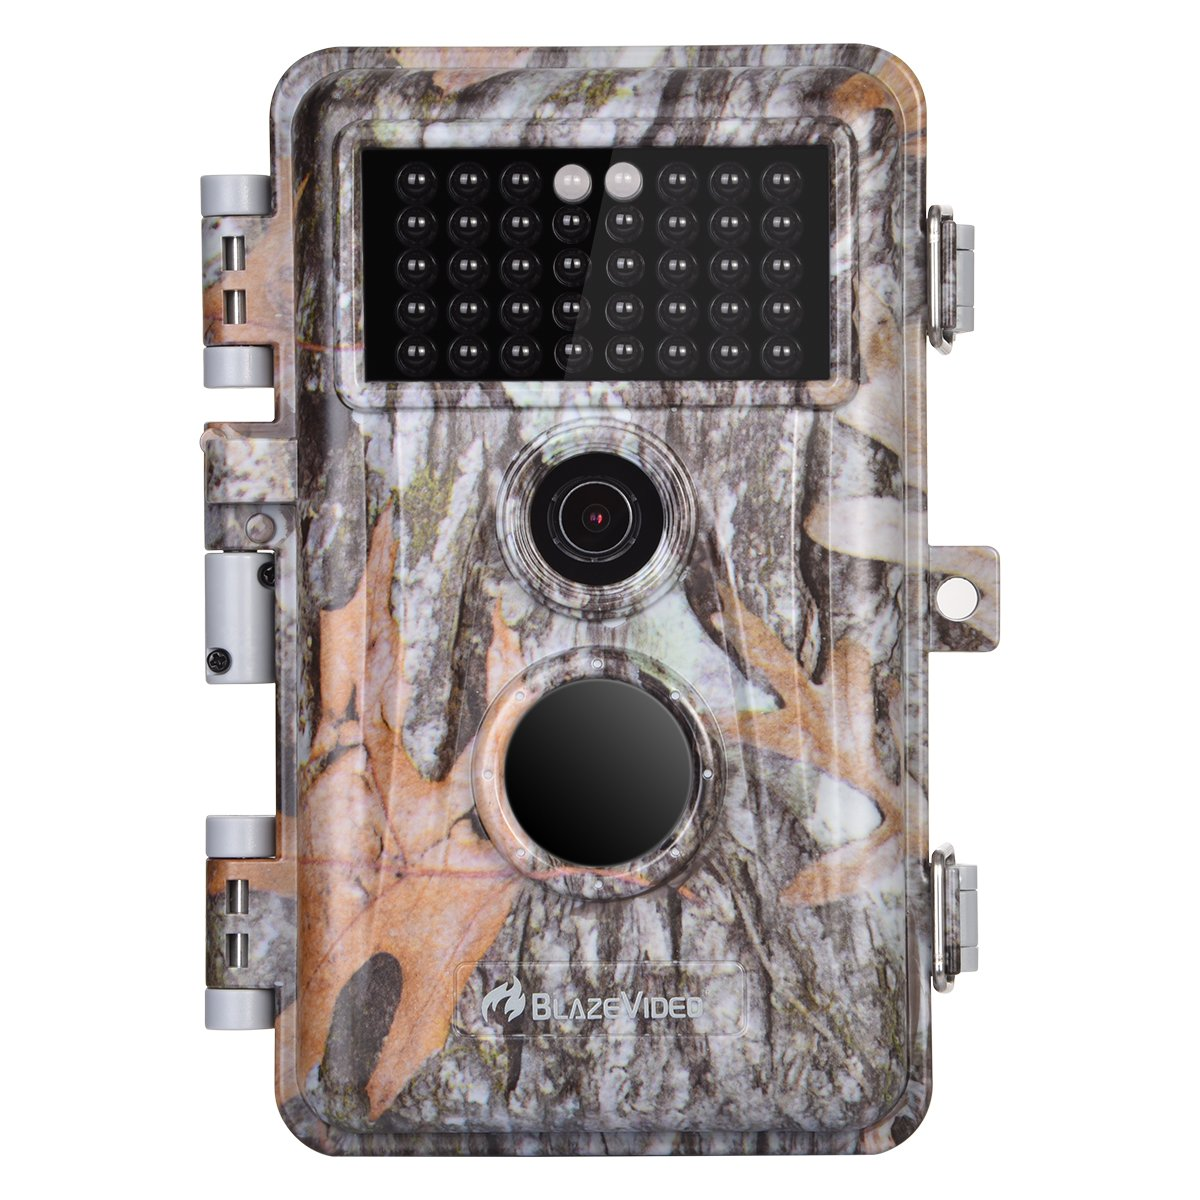 BlazeVideo 2-Pack 16MP HD Trail Hunting Game Cameras Camouflage Cam, Hunters Password Protection Wildlife Deer Animal Cam, PIR Motion Sensor Detection Activated Waterproof with 40PCs Low Glow Infrared LEDs & Up to 65ft Night Vision, Video and Photo Mod